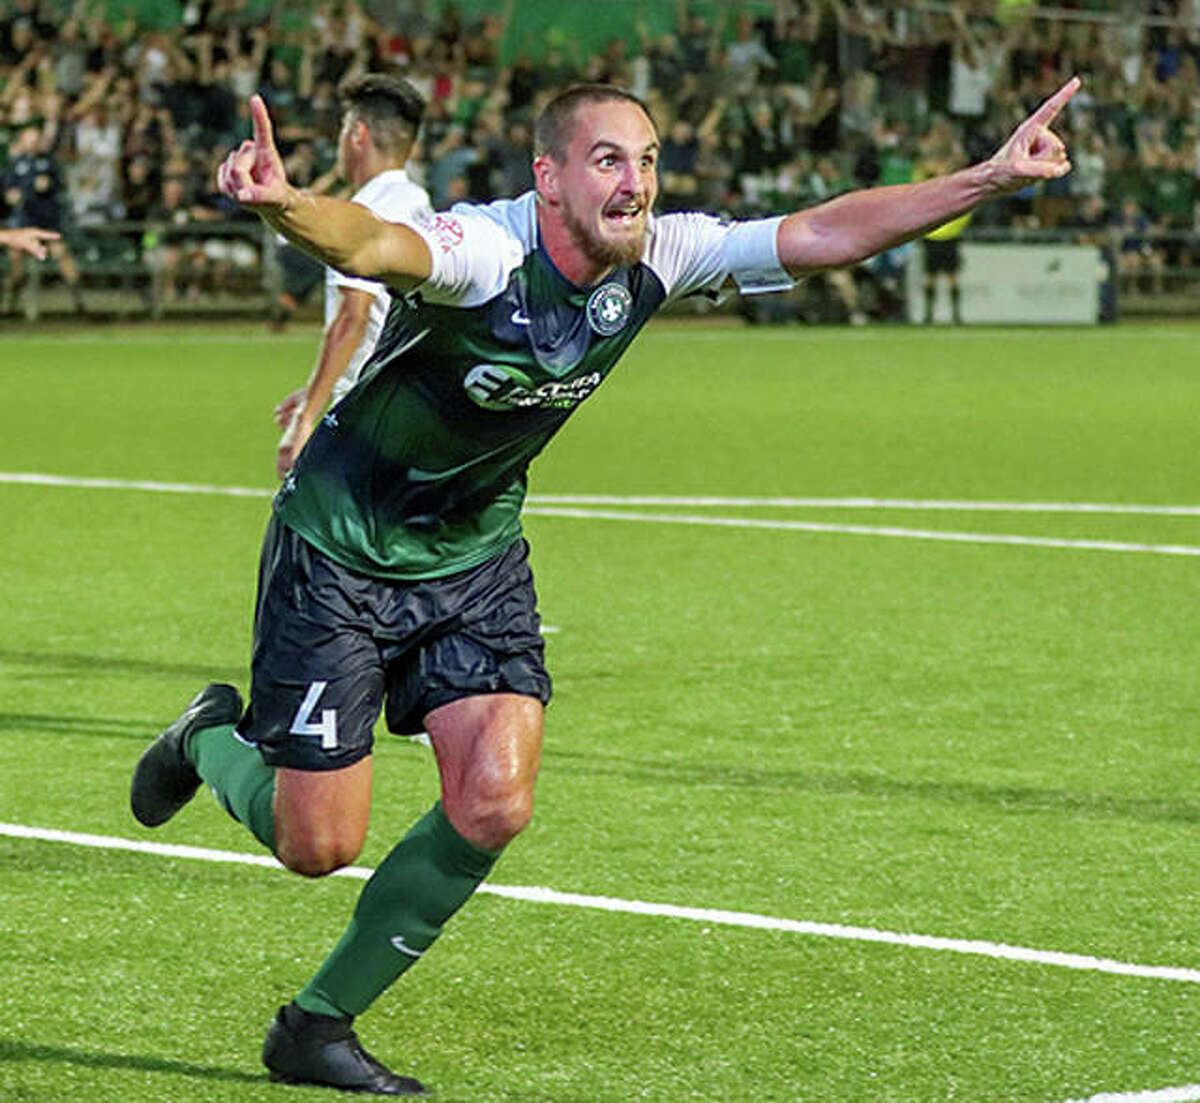 STLFC's Sam Fink celebrates a game-winning goal in a U.S. Open Cup game against FC Cincinnati last season at World Wide Technology Soccer Park in Fenton. Fink is a graduate of Edwardsville High School and Wake Forest University.